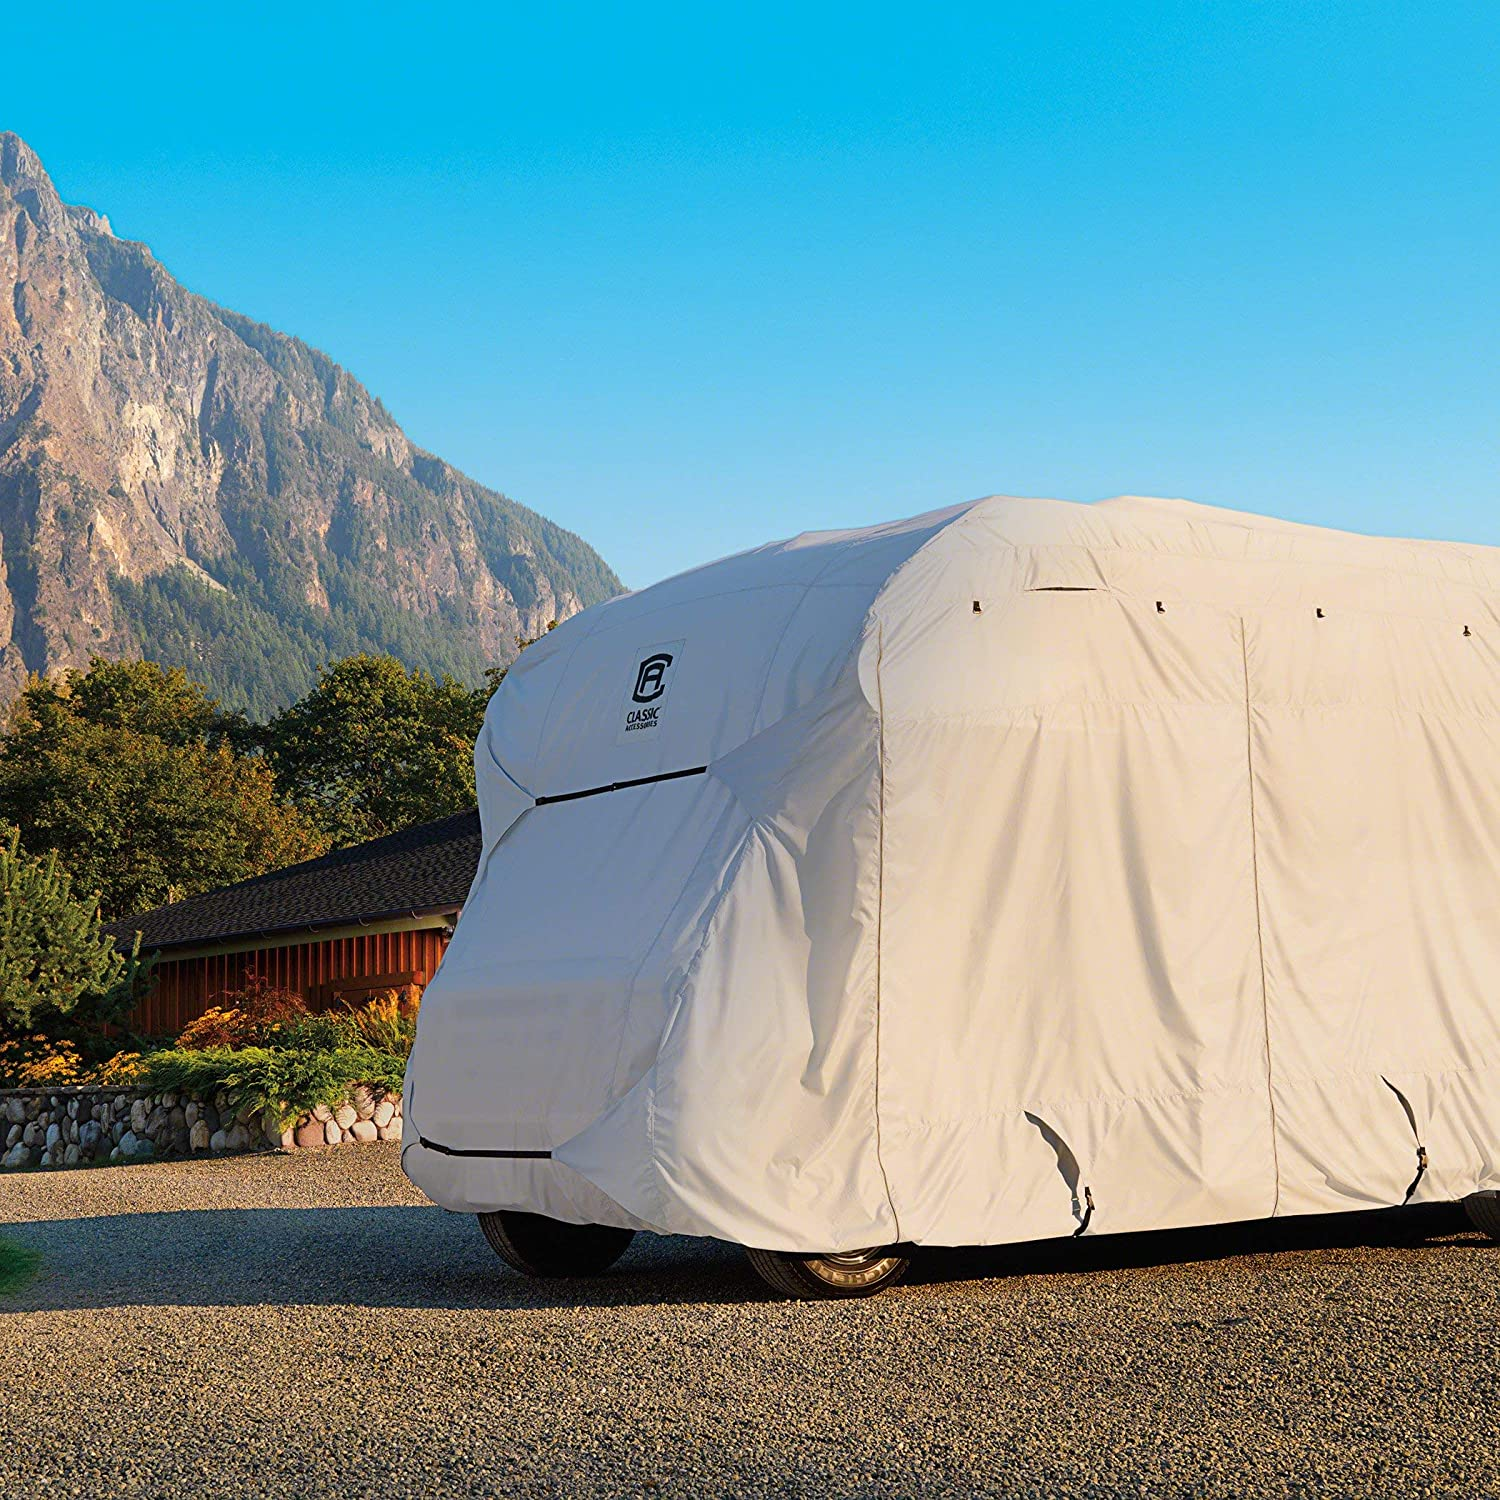 Classic Accessories PermaPro Heavy Duty R-Pod Travel Trailer Cover Limited Grey Renewed Model 3